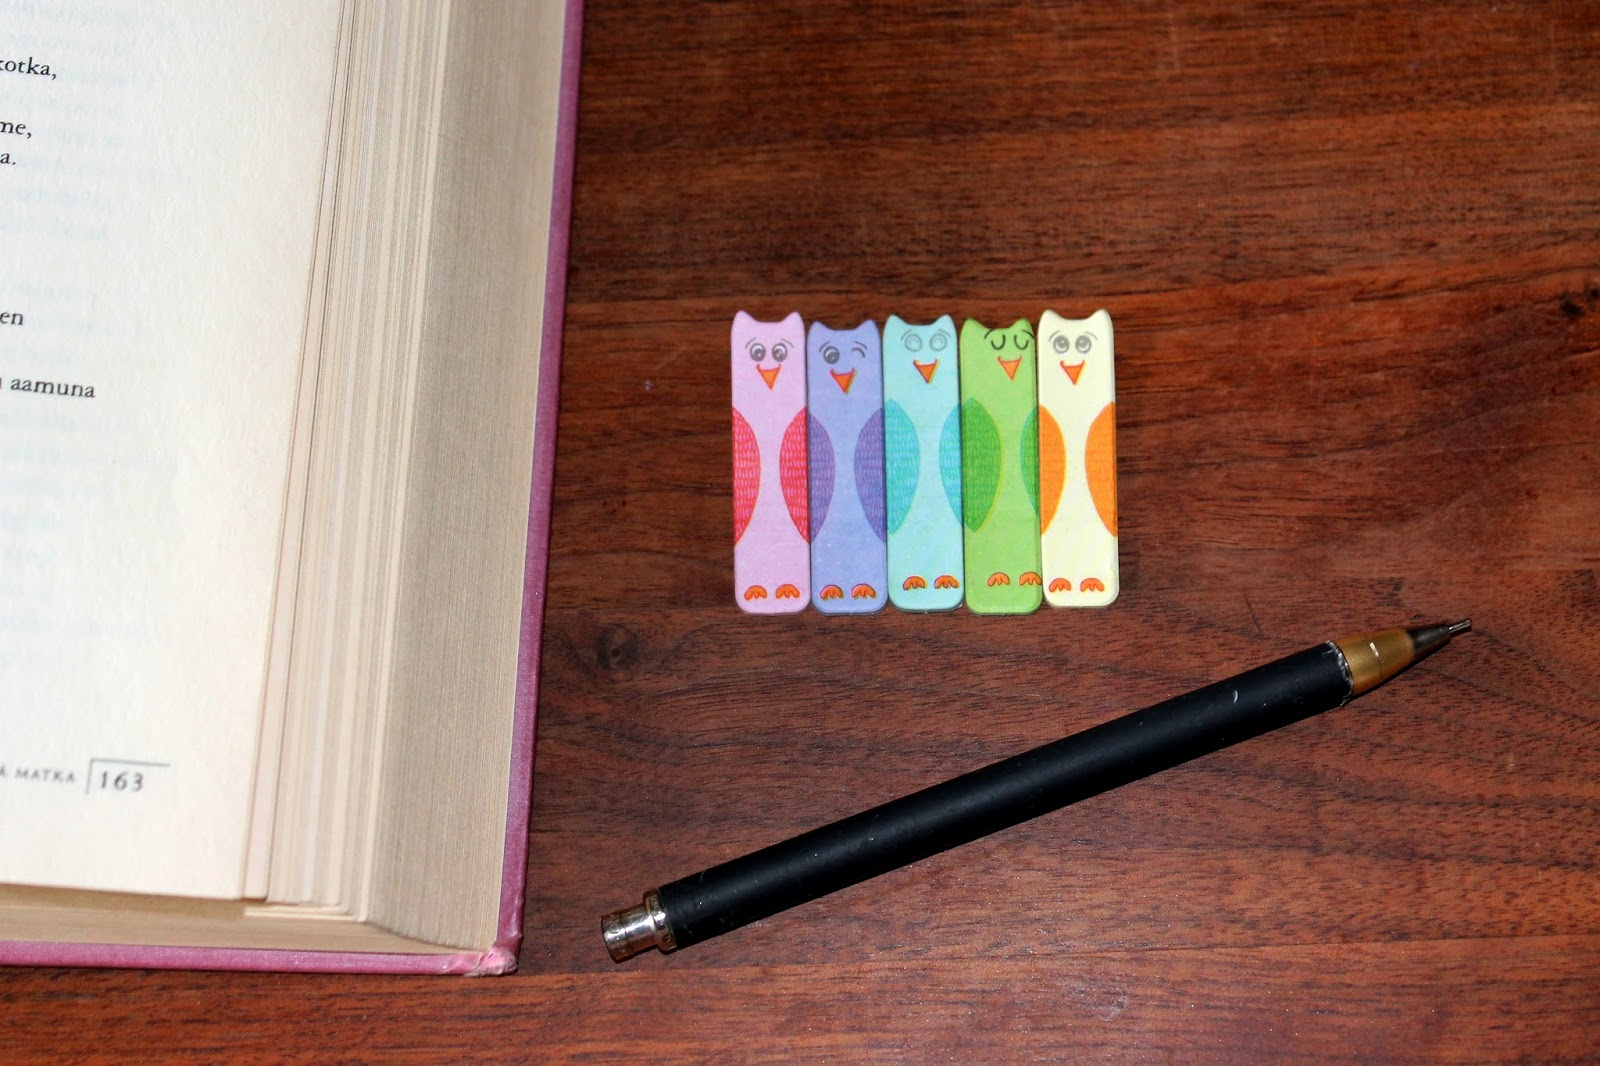 #student #blogger #classic #novel #poem #moder #literature #tiger #bookmark #pen #nostalgic #studentlife